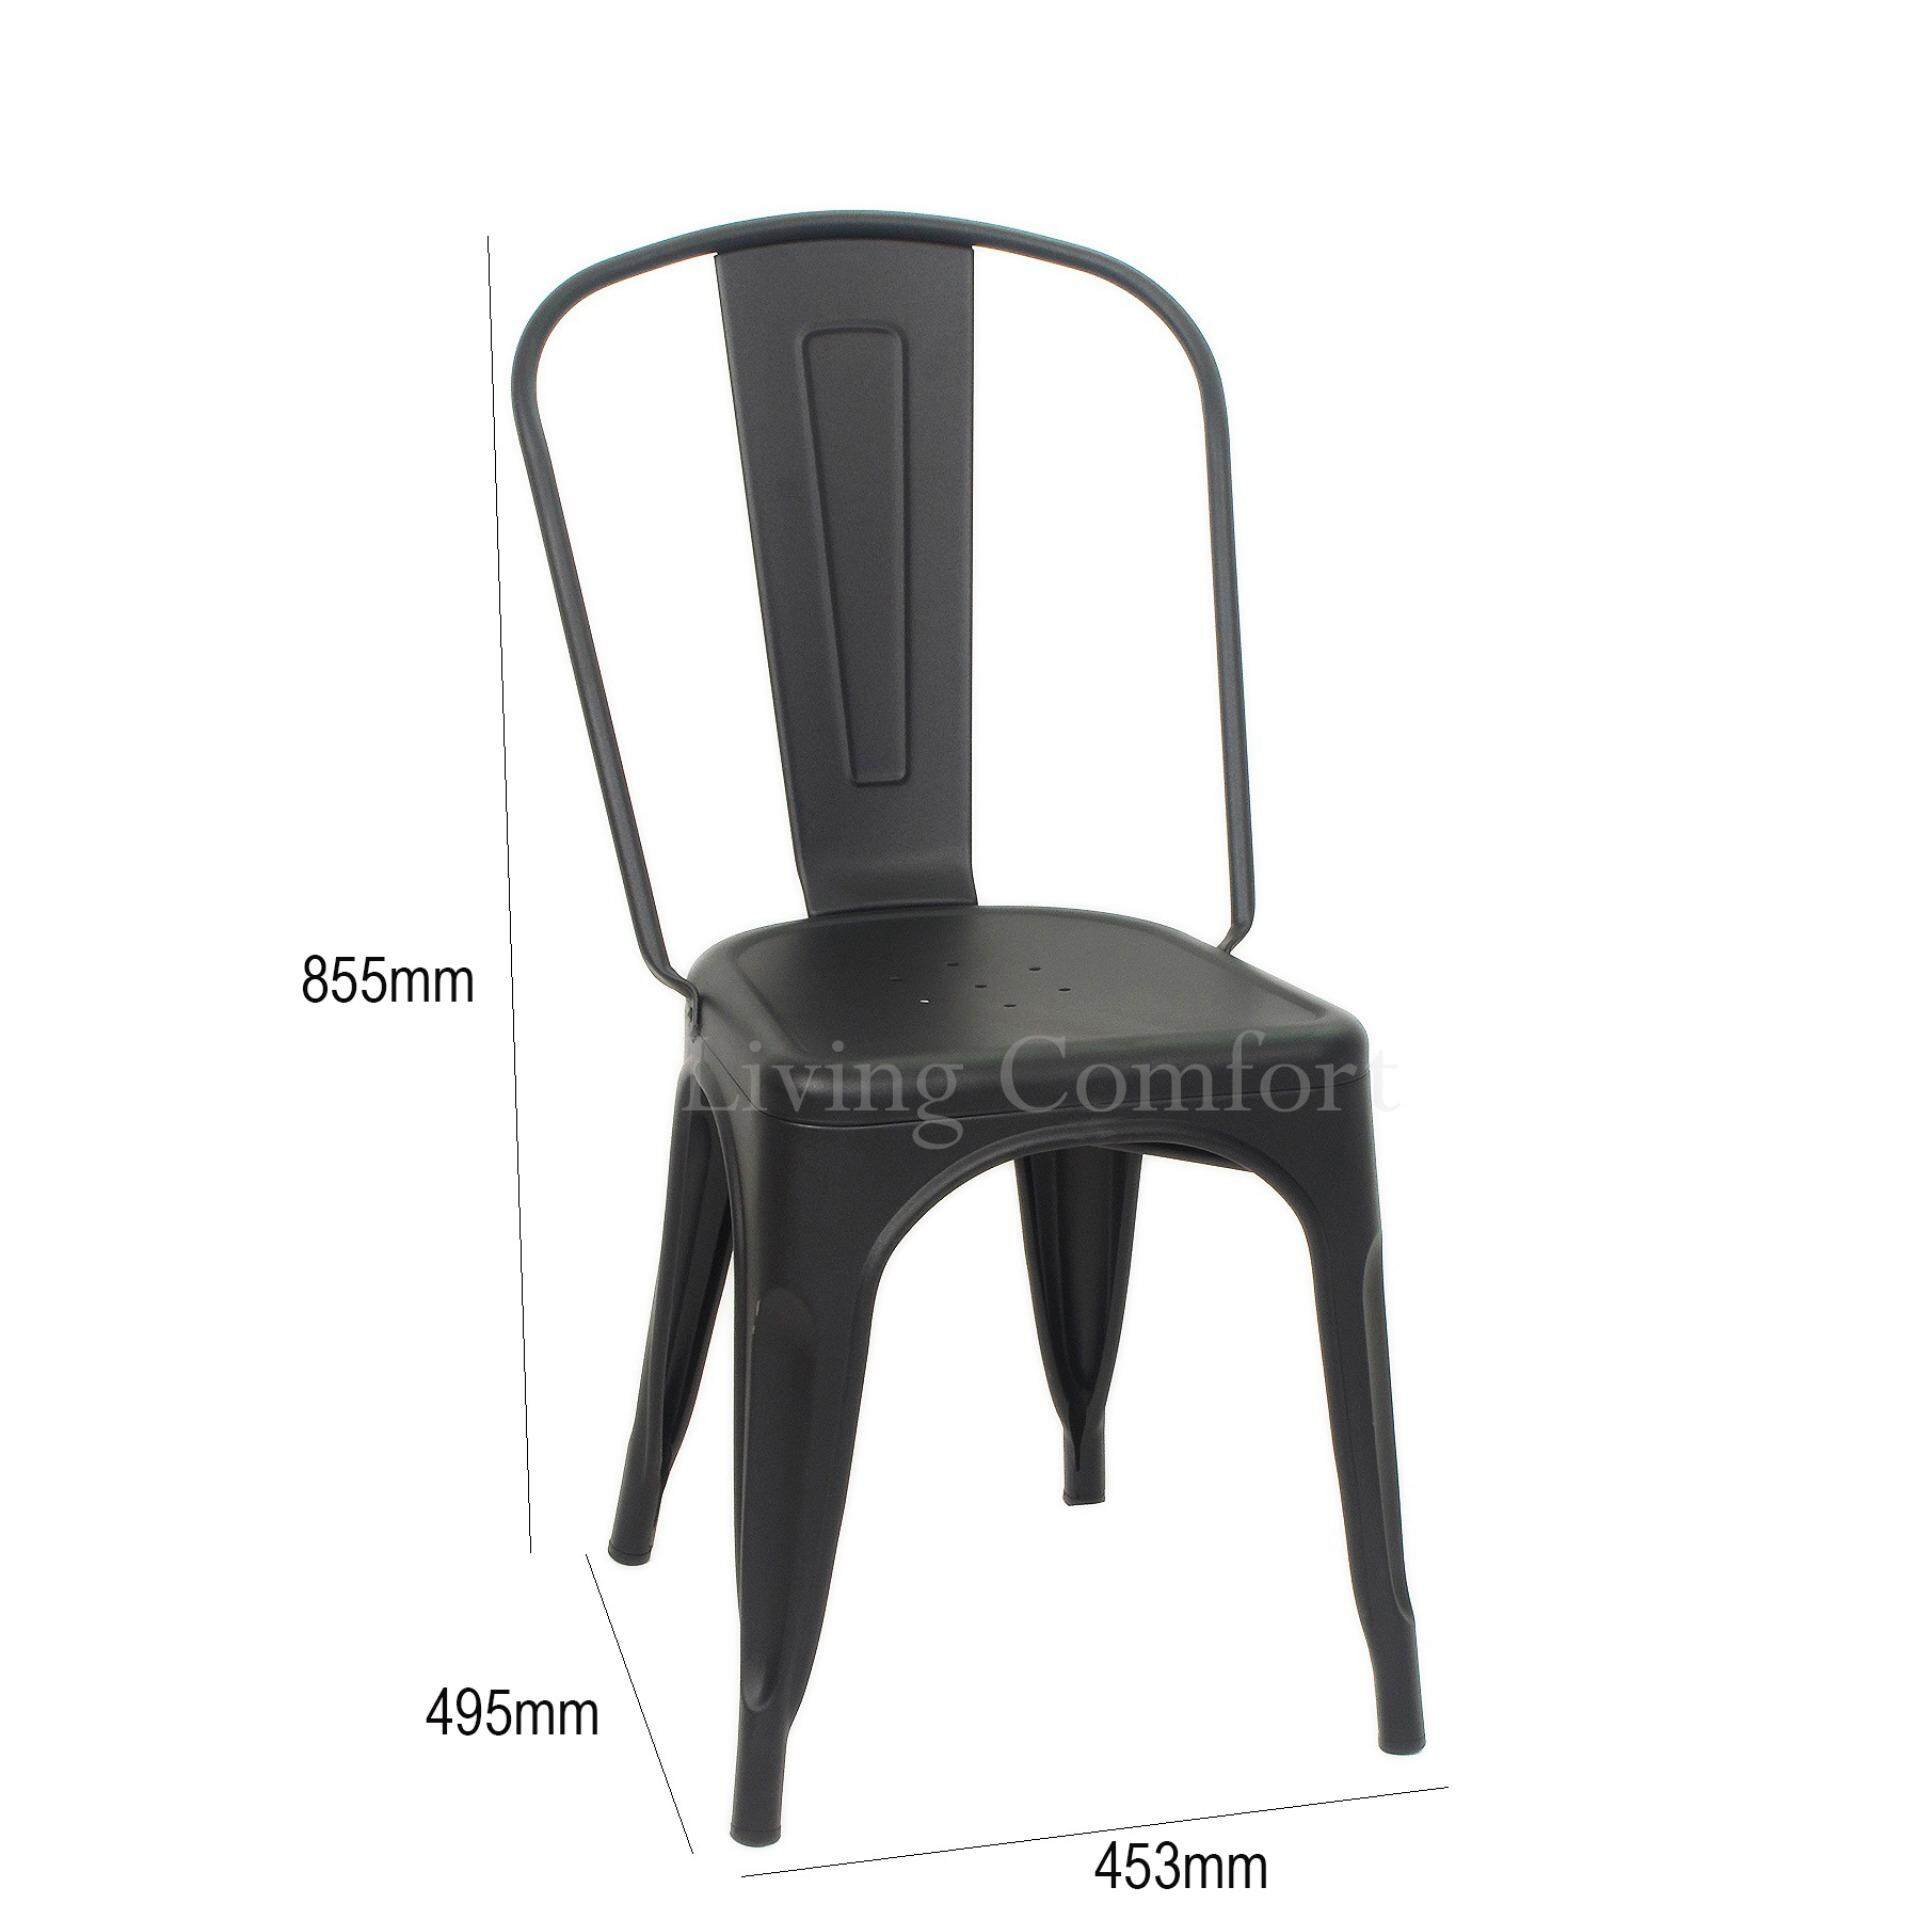 6 PCS TOLIX METAL DINING / RESTAURANT / CAFE / SIDE CHAIR (BLACK) made in  Malaysia